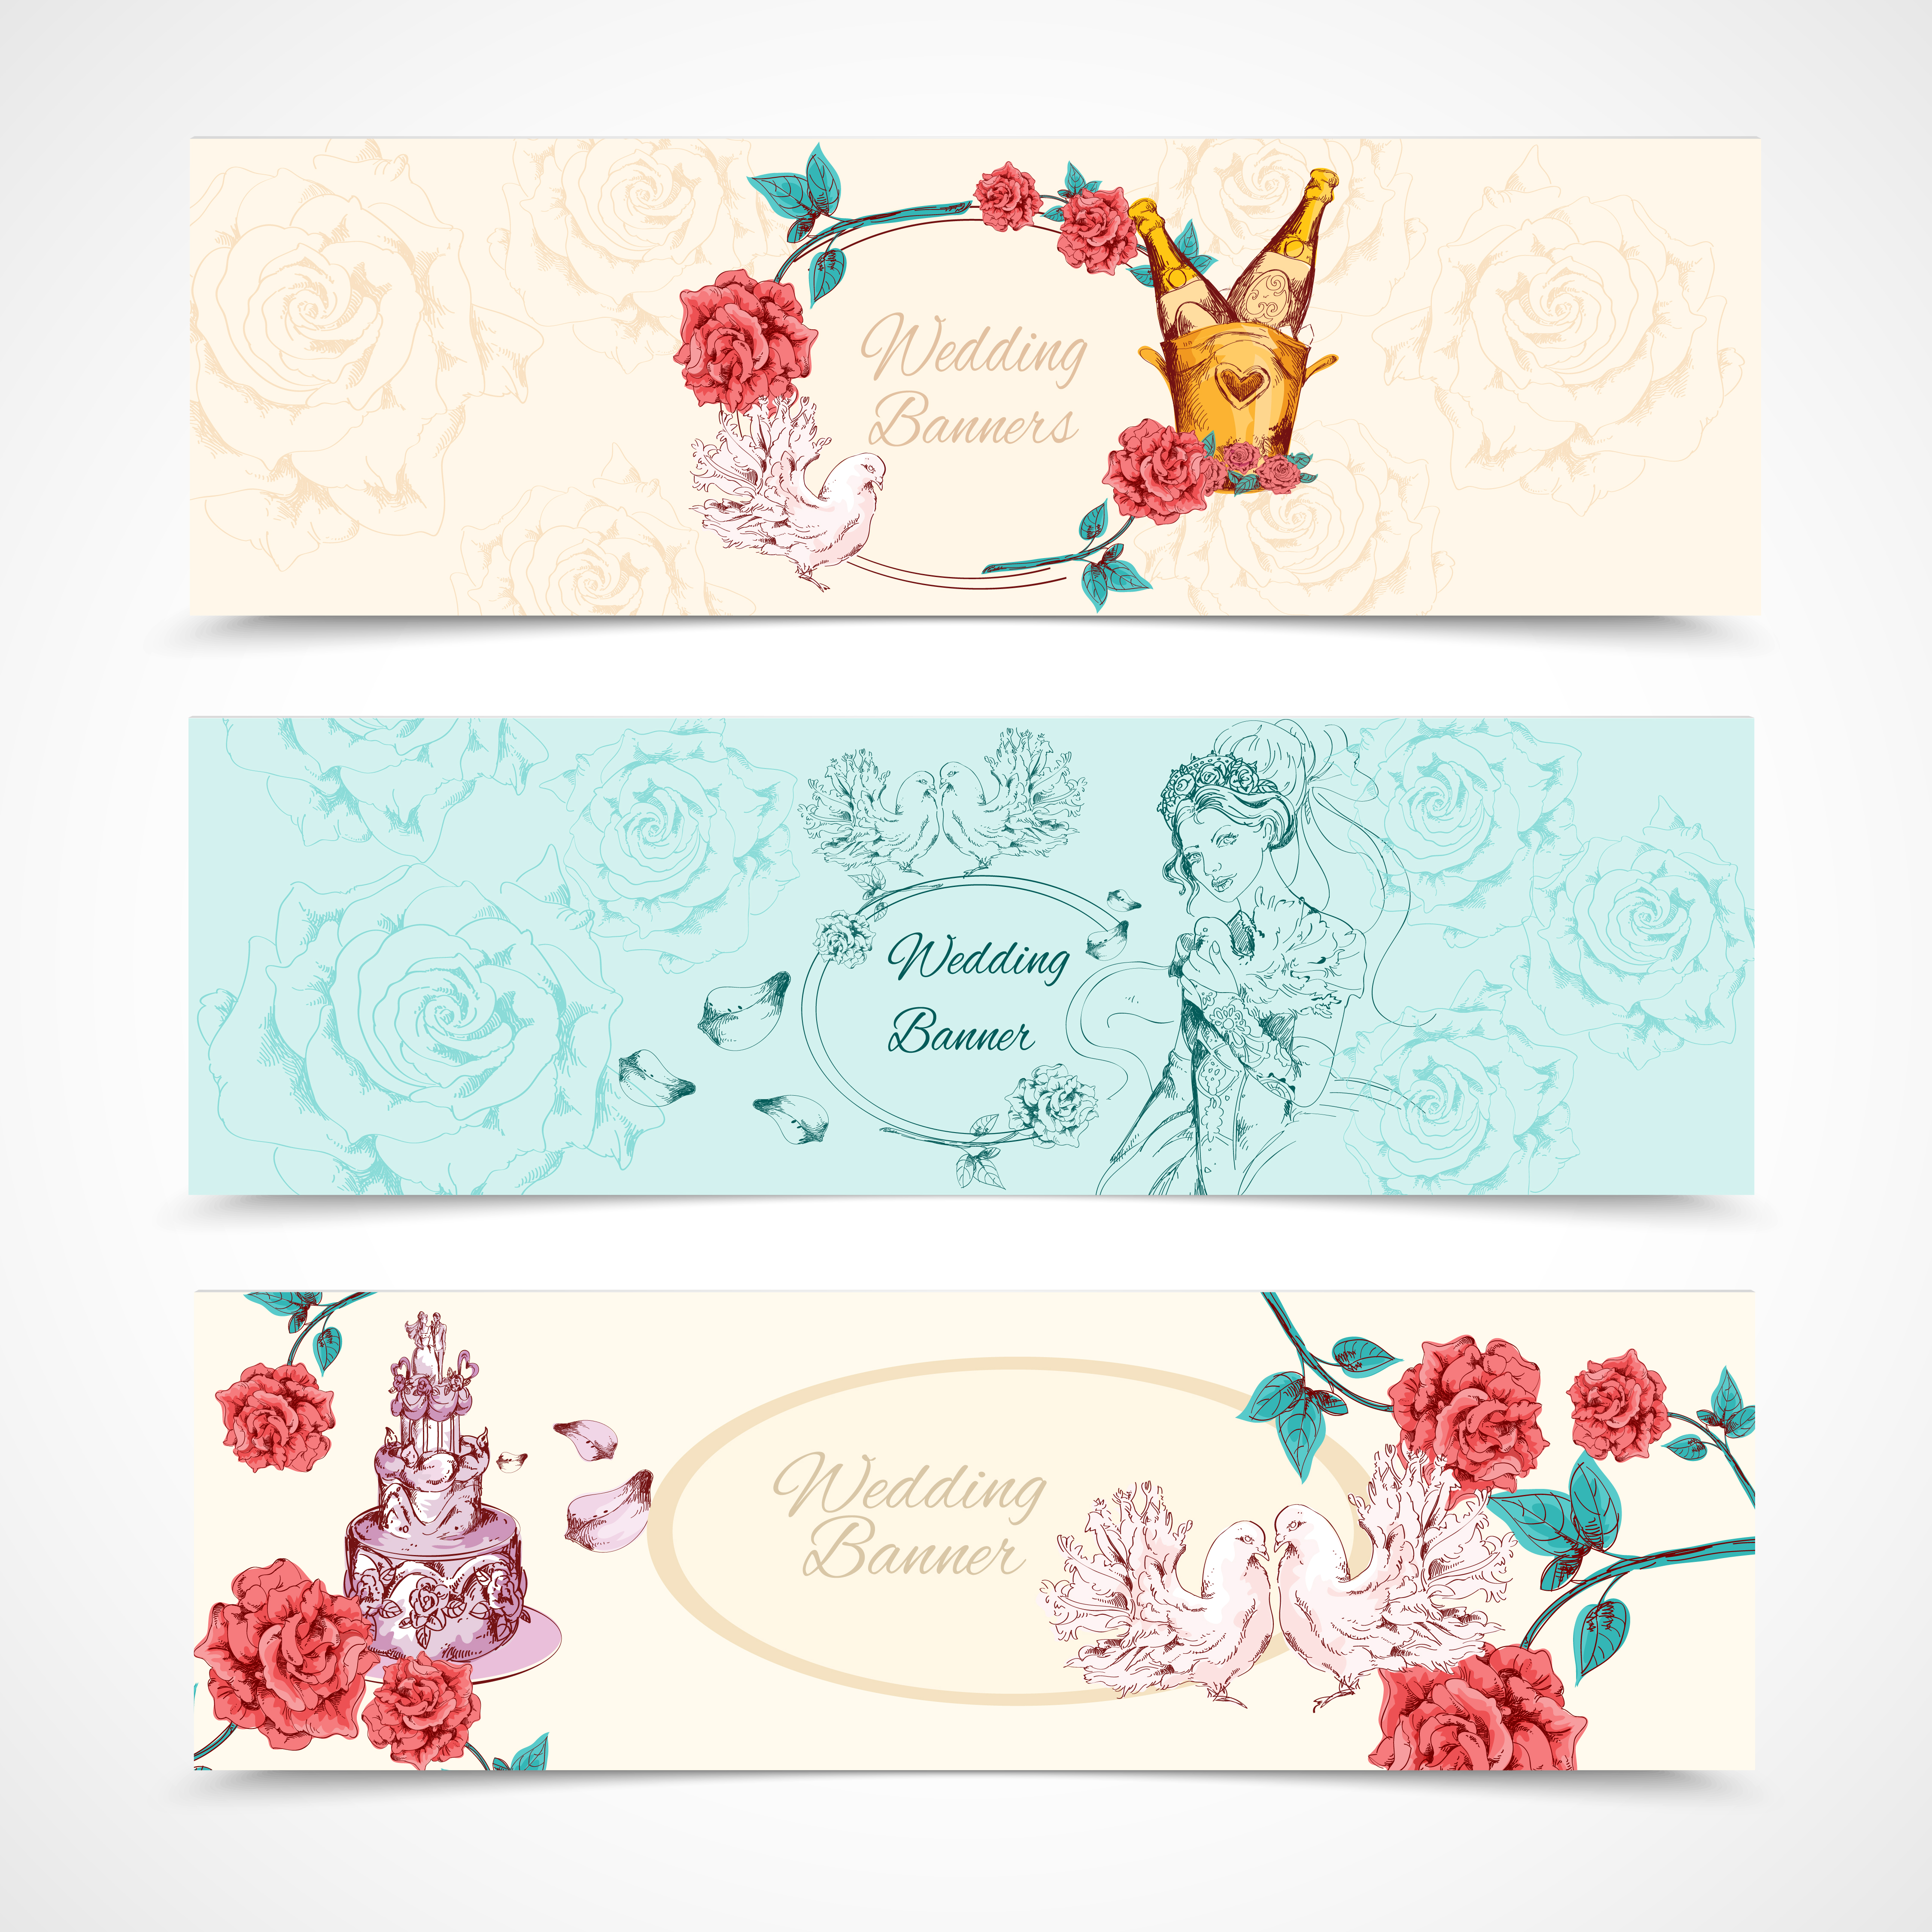 Wedding Banners Set - Download Free Vectors, Clipart ...